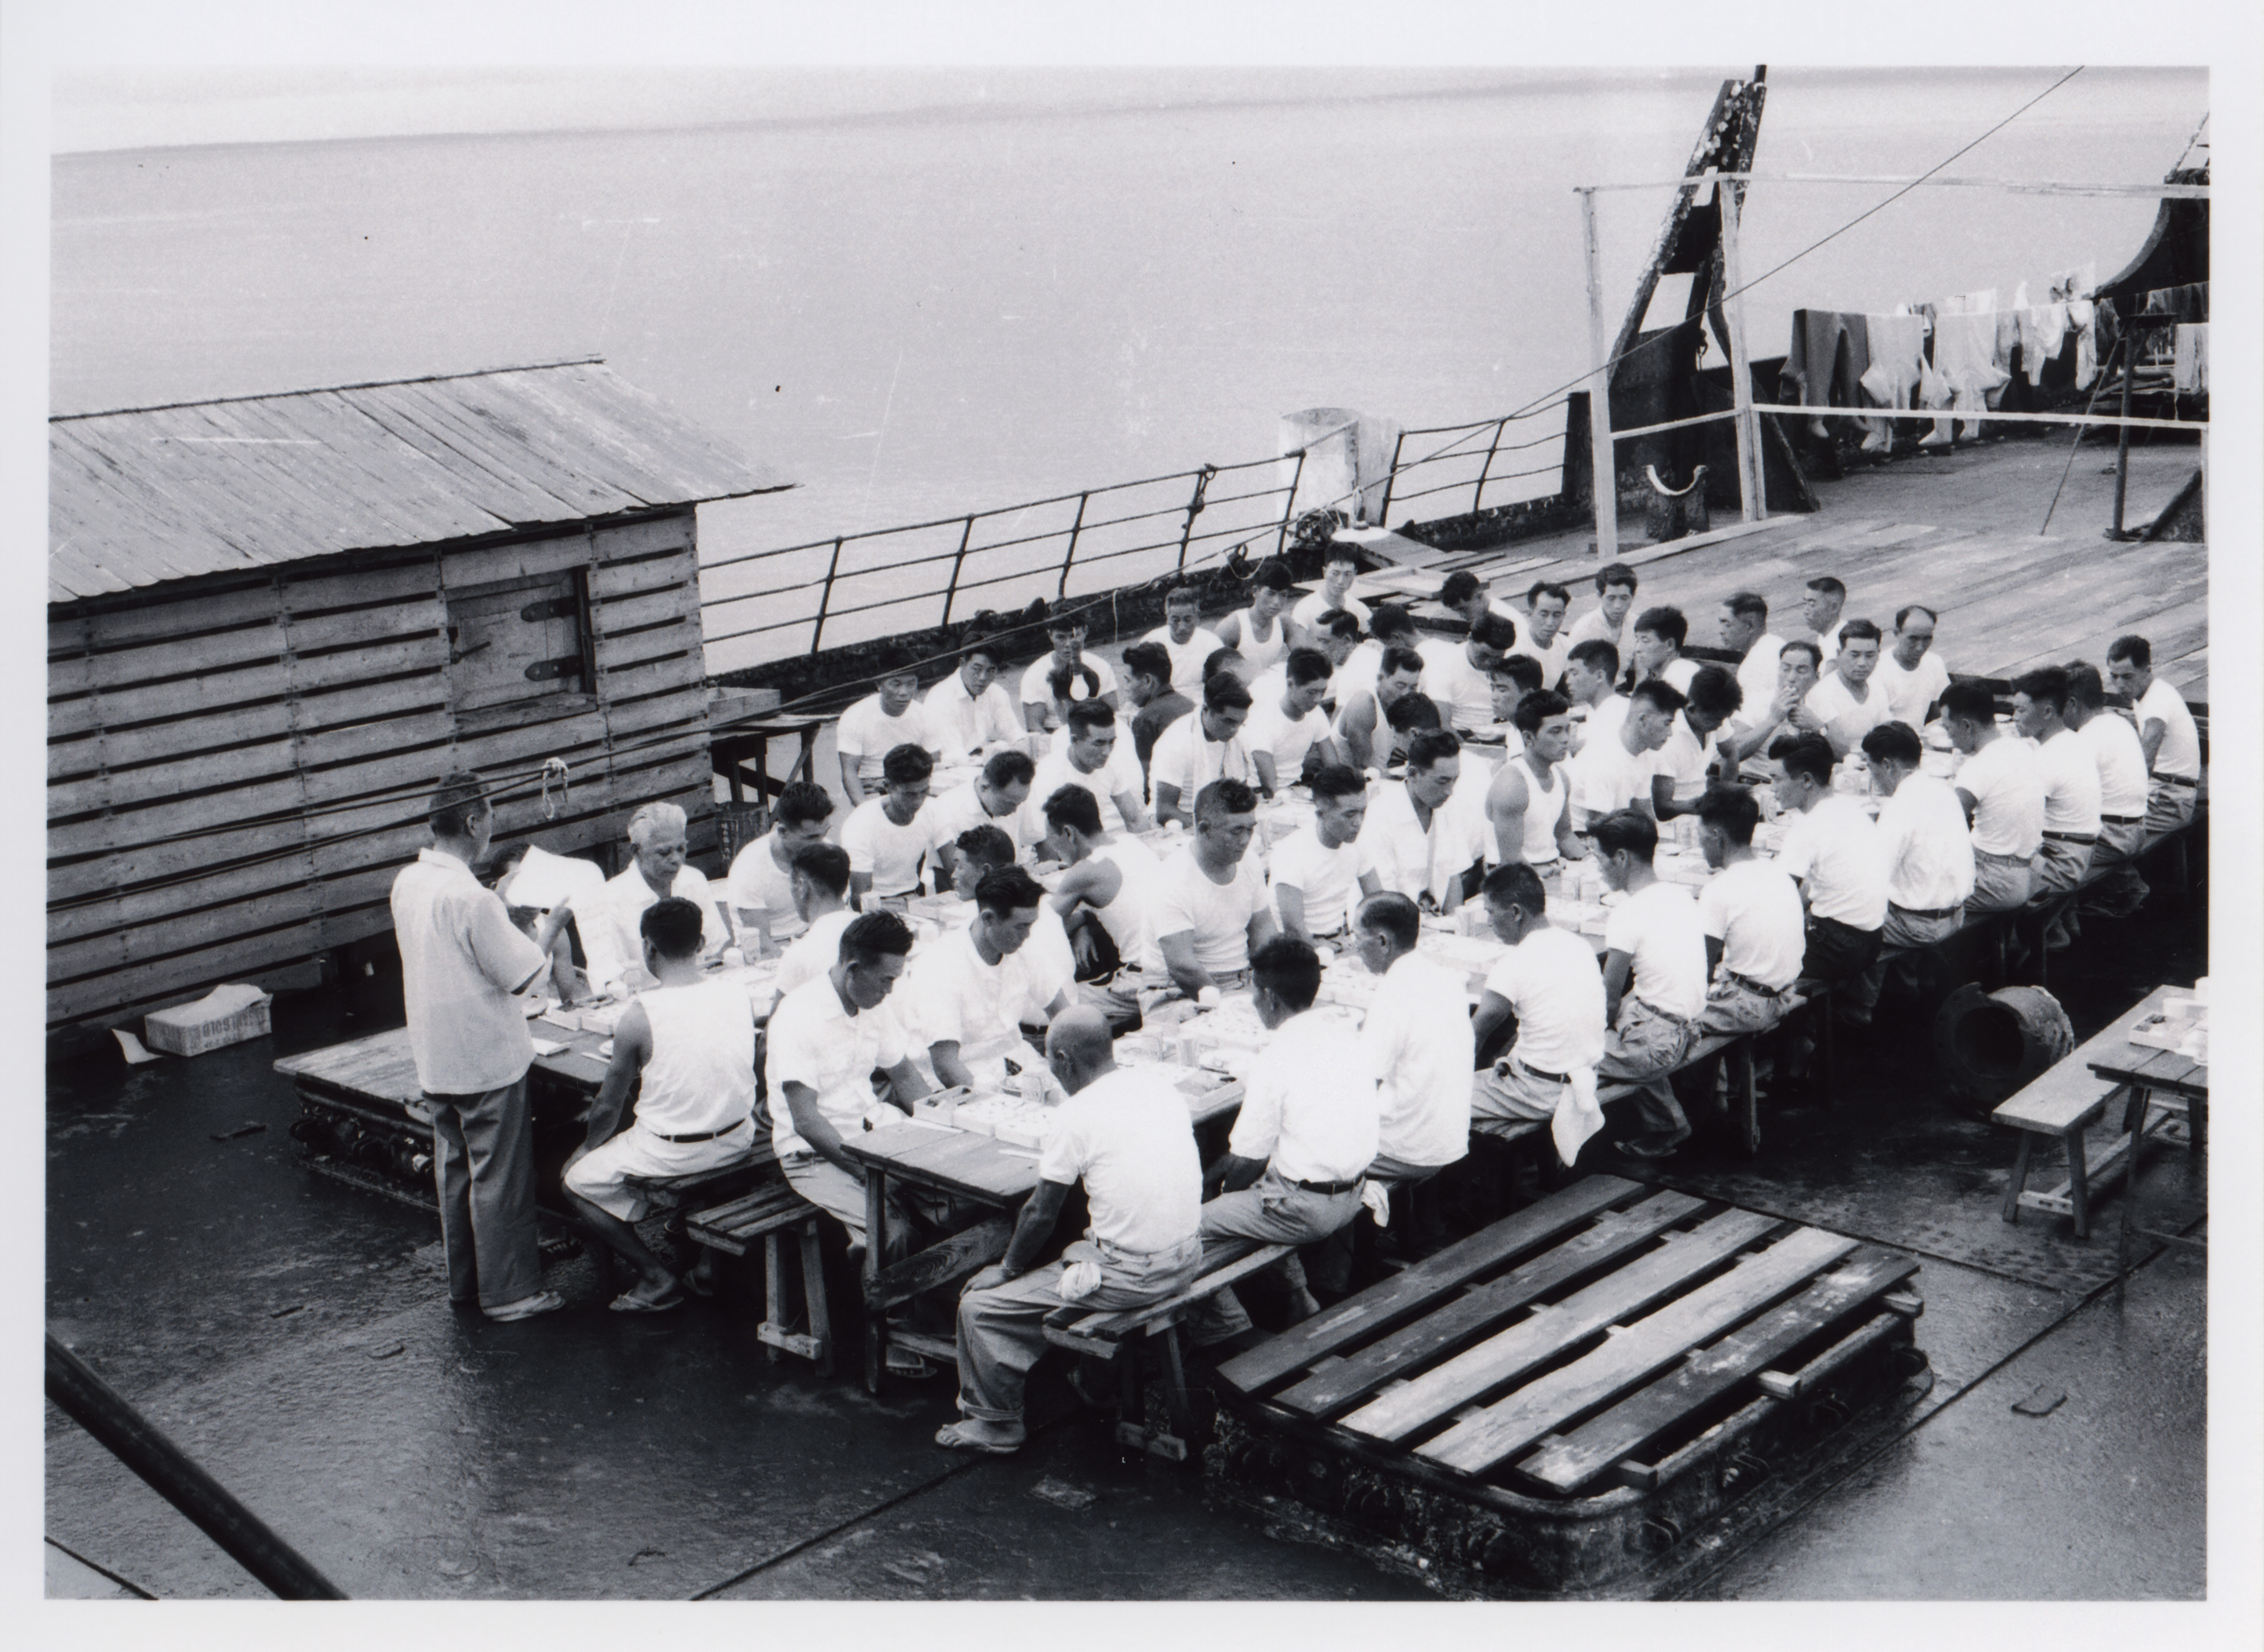 Employees of the Fujita Salvage Company celebrate a New Year's Day lunch on board the MV British Motorist in 1961.